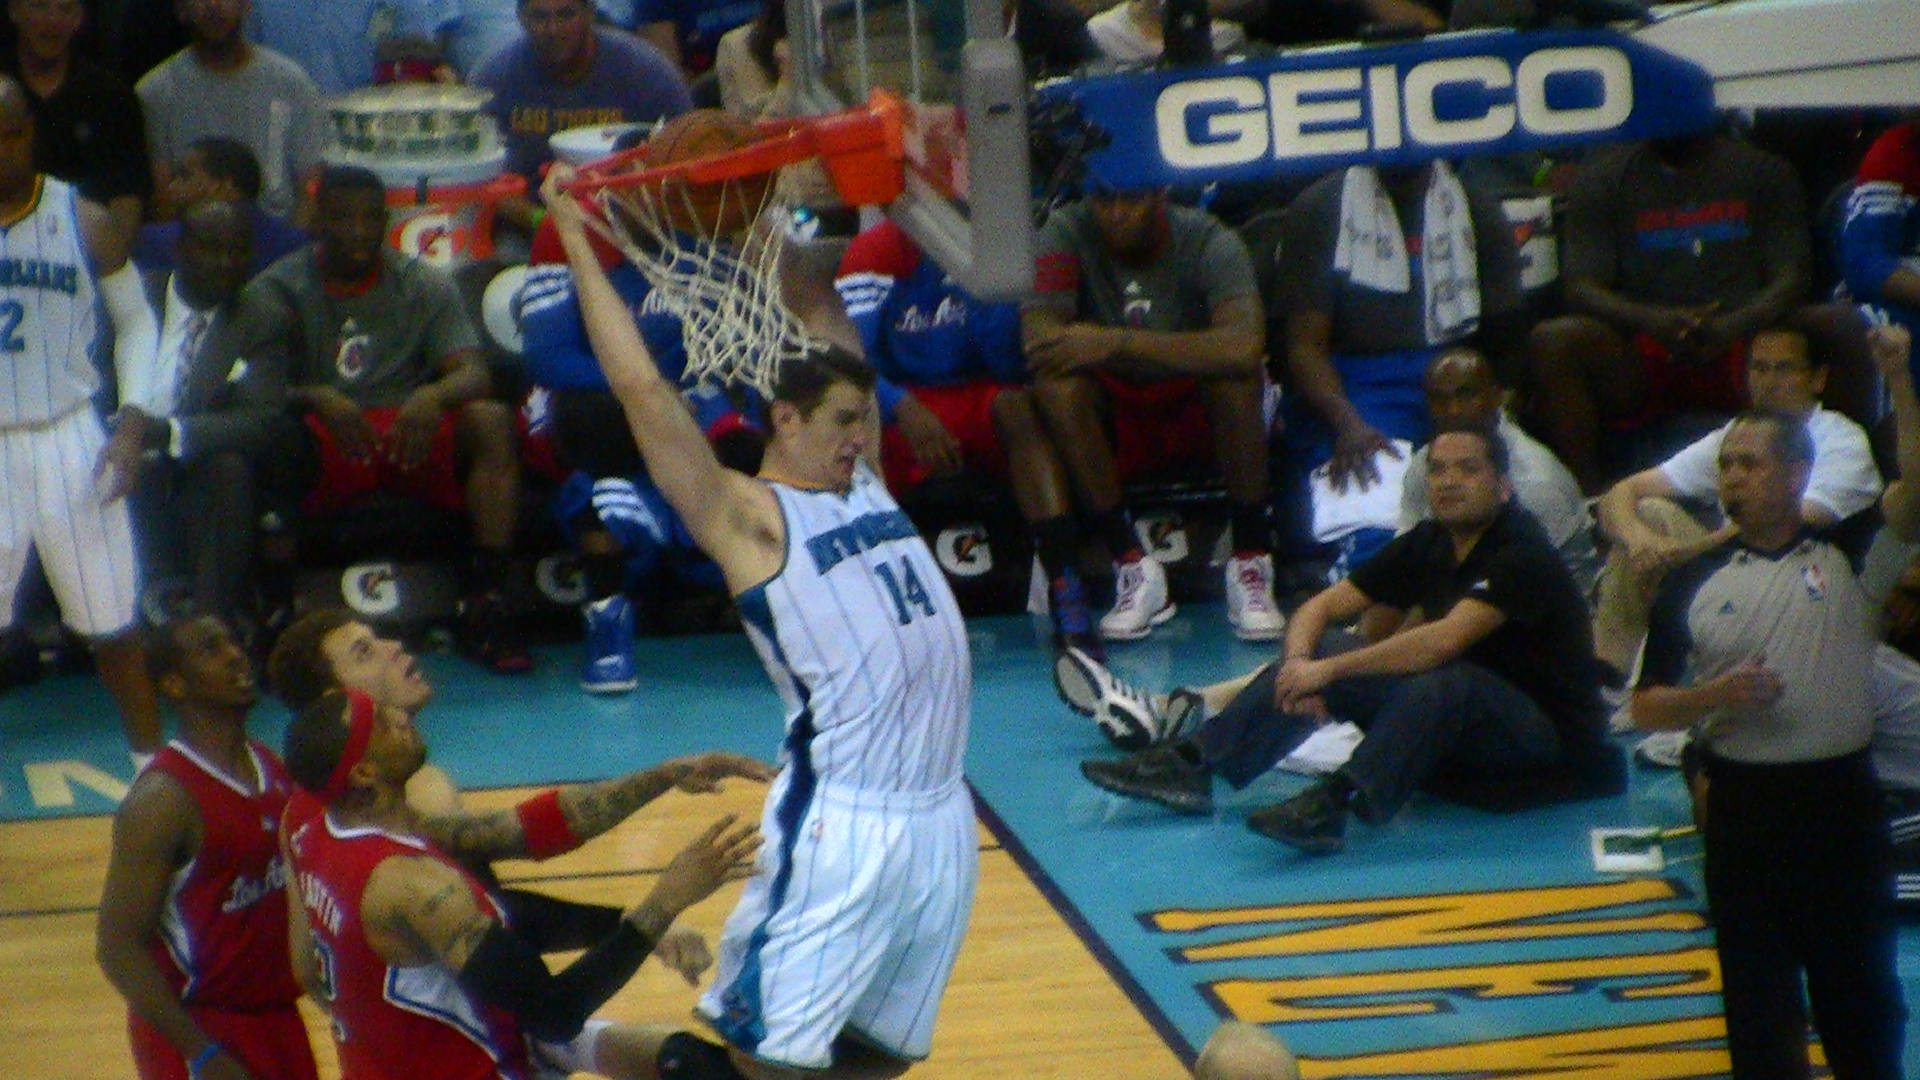 Despite his ill-advised foul, Jason Smith played a very impressive couple of games this week.